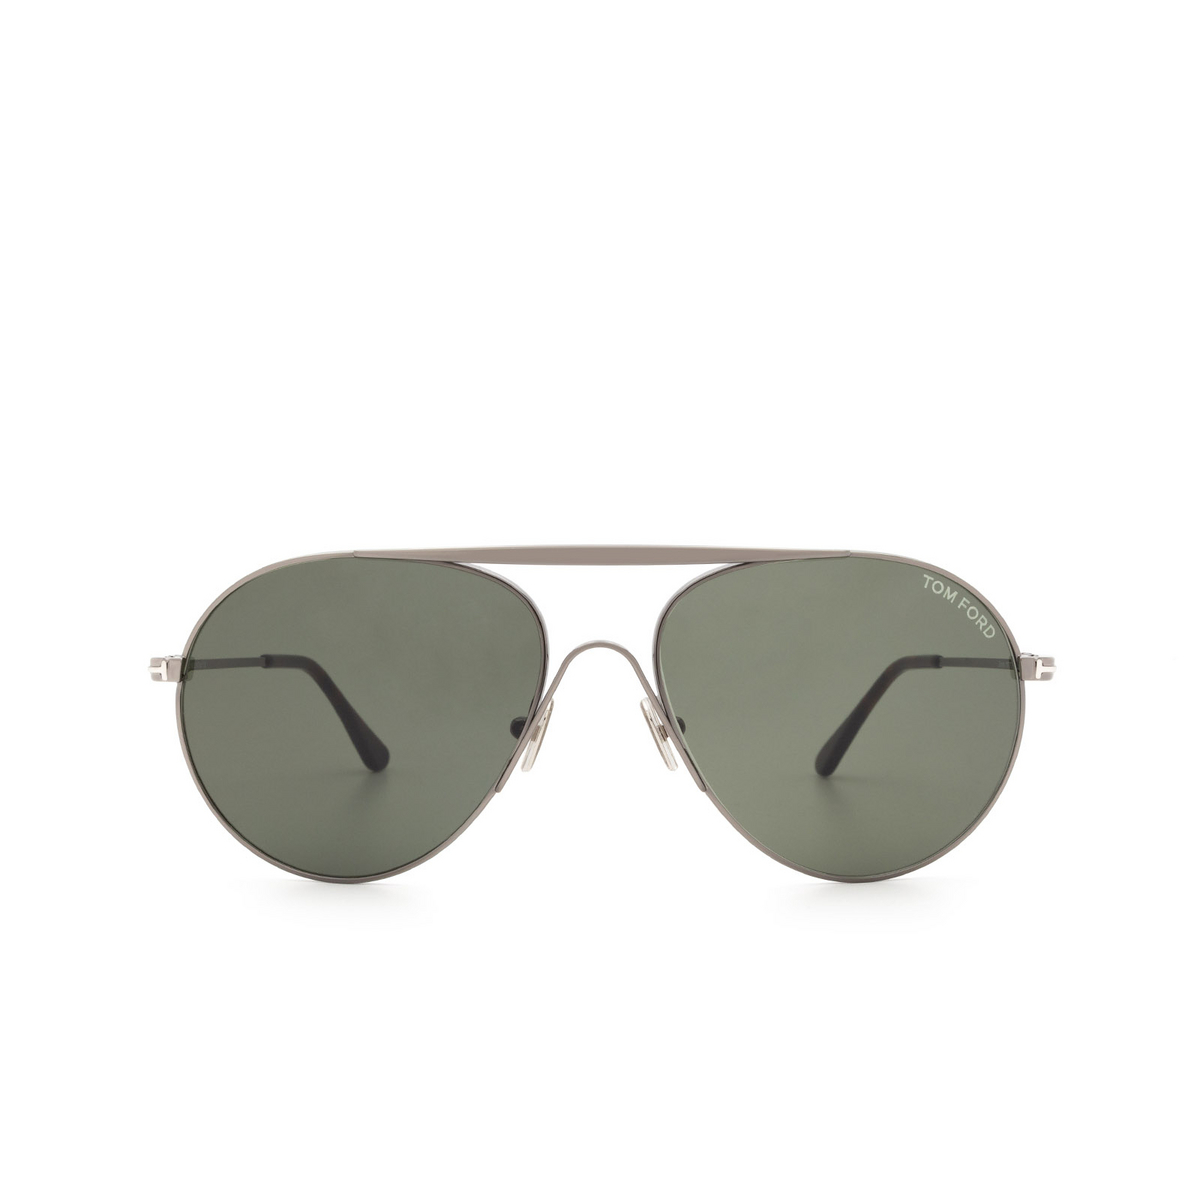 Tom Ford® Aviator Sunglasses: Smith FT0773 color Shiny Dark Ruthenium 12N - front view.